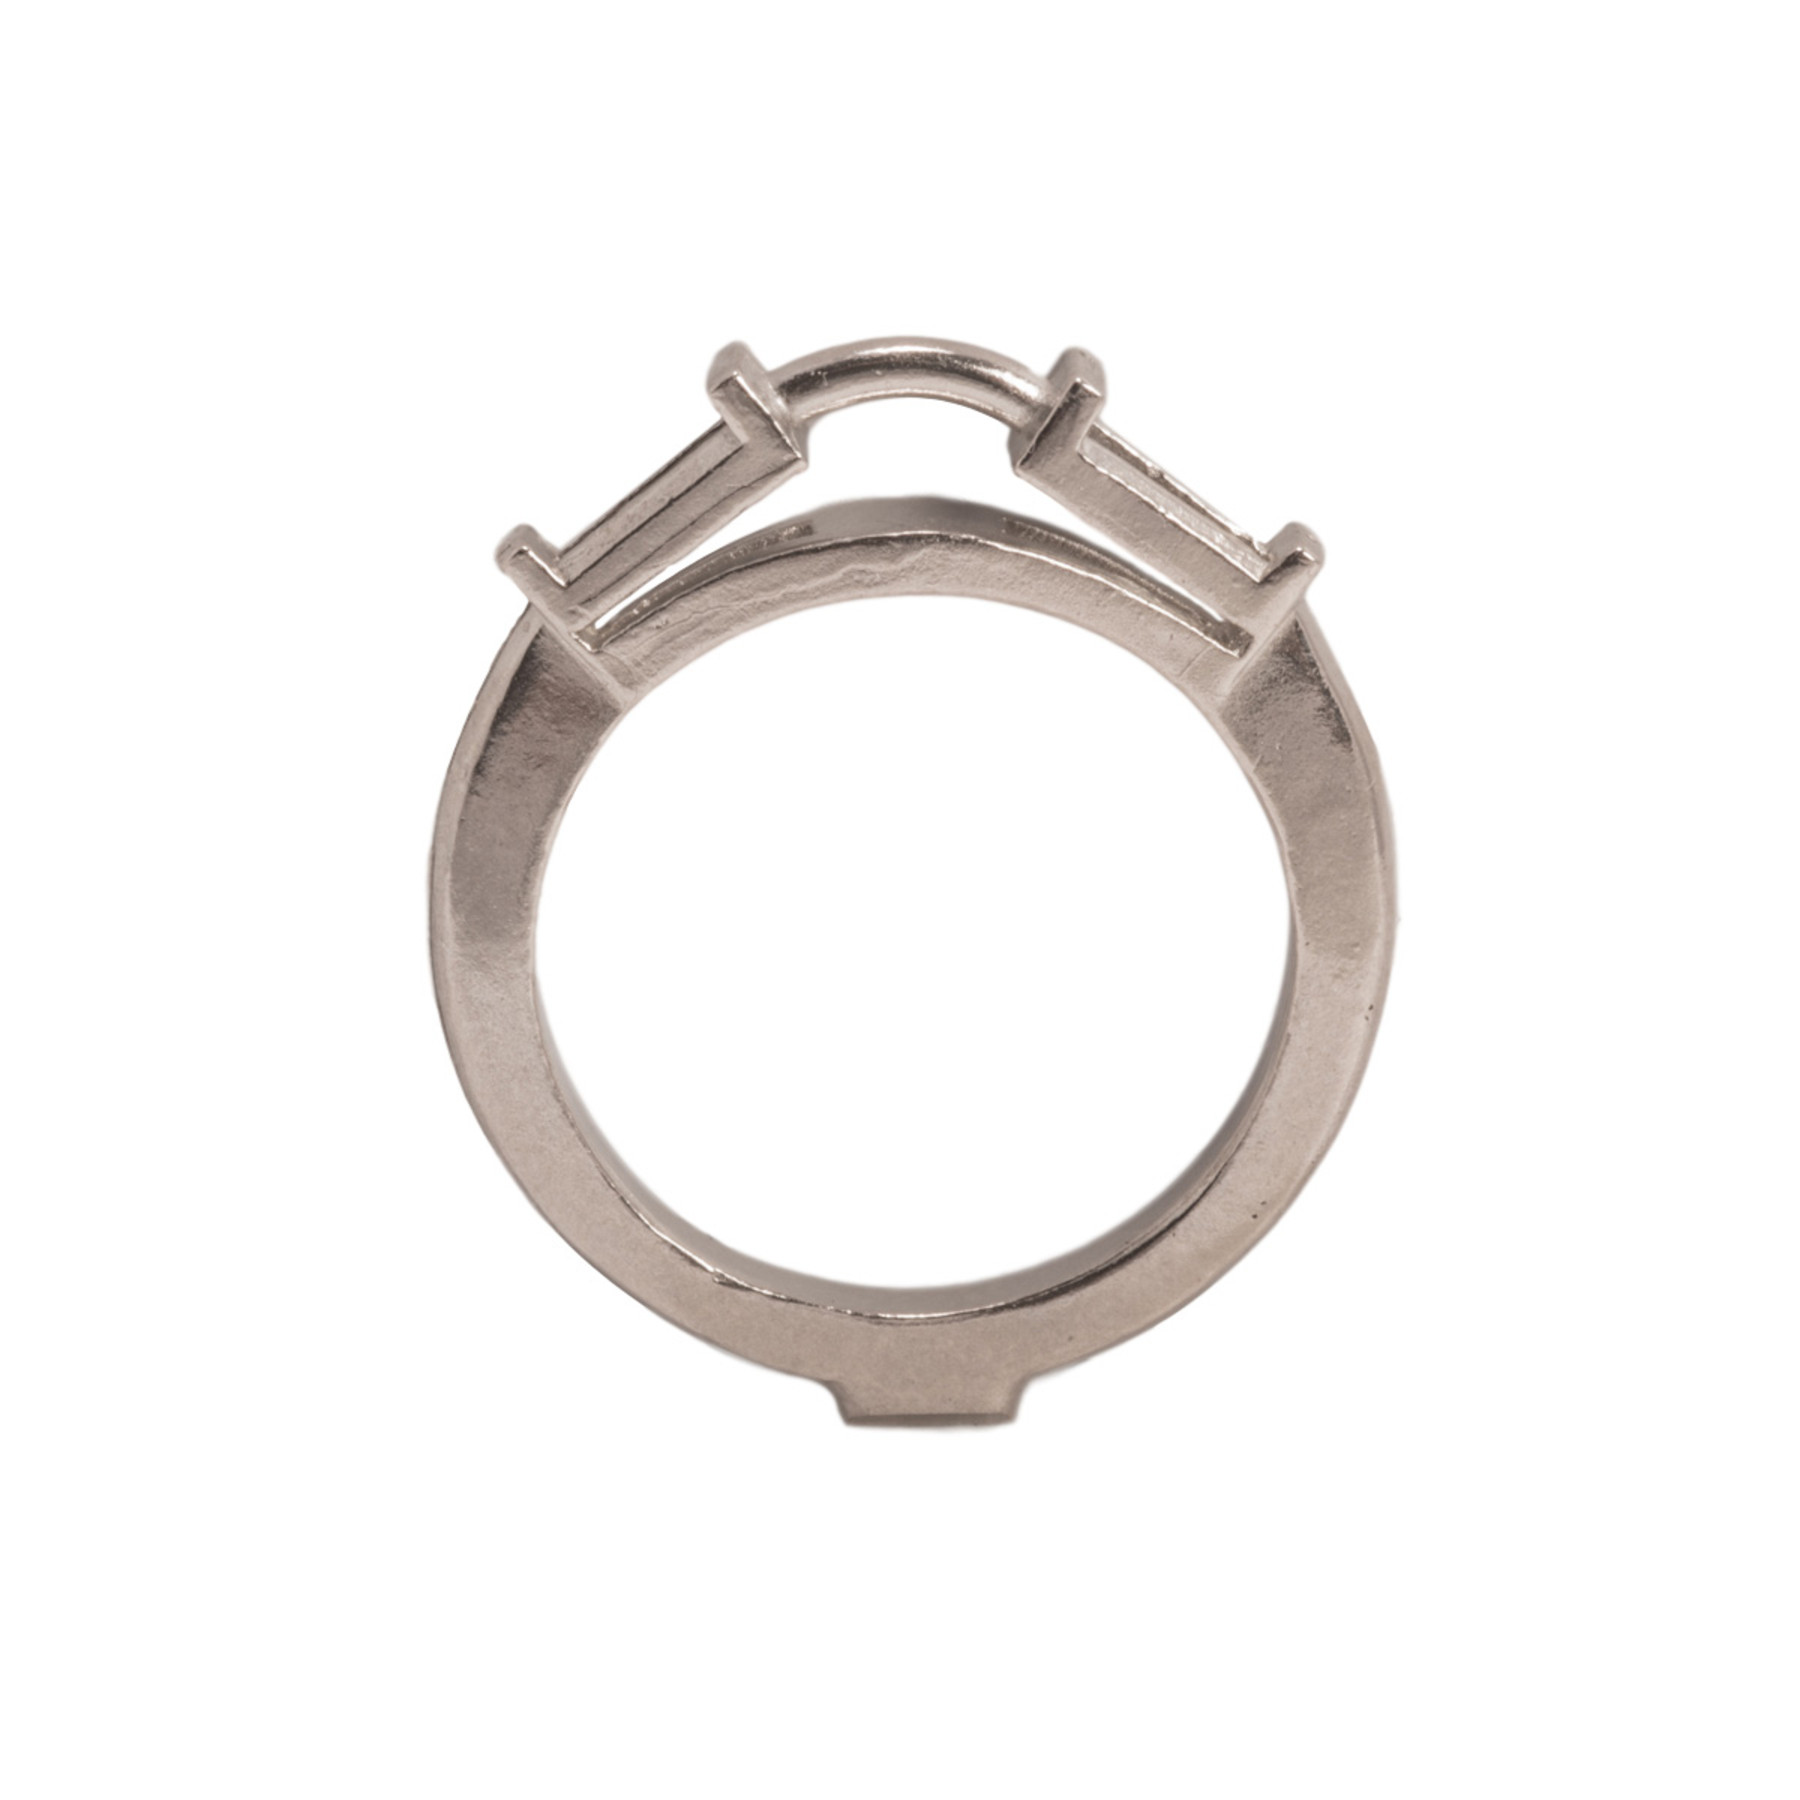 41216310c2bd4 14KW, 18KW & Platinum Empty Center With 5 x 3 x 2mm Tapered Baguette Sides  Ring Mountings